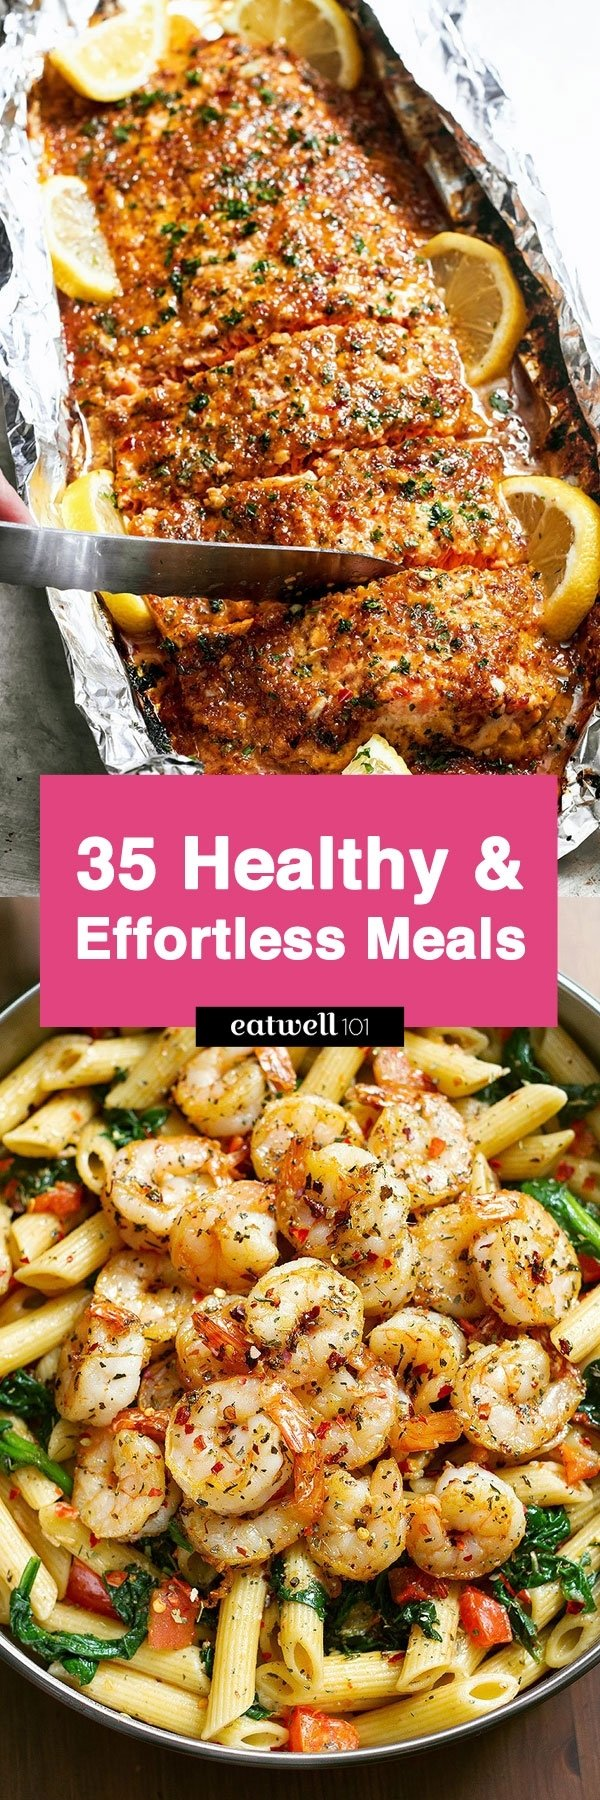 10 Perfect Fast And Healthy Dinner Ideas 41 low effort and healthy dinner recipes eatwell101 21 2020